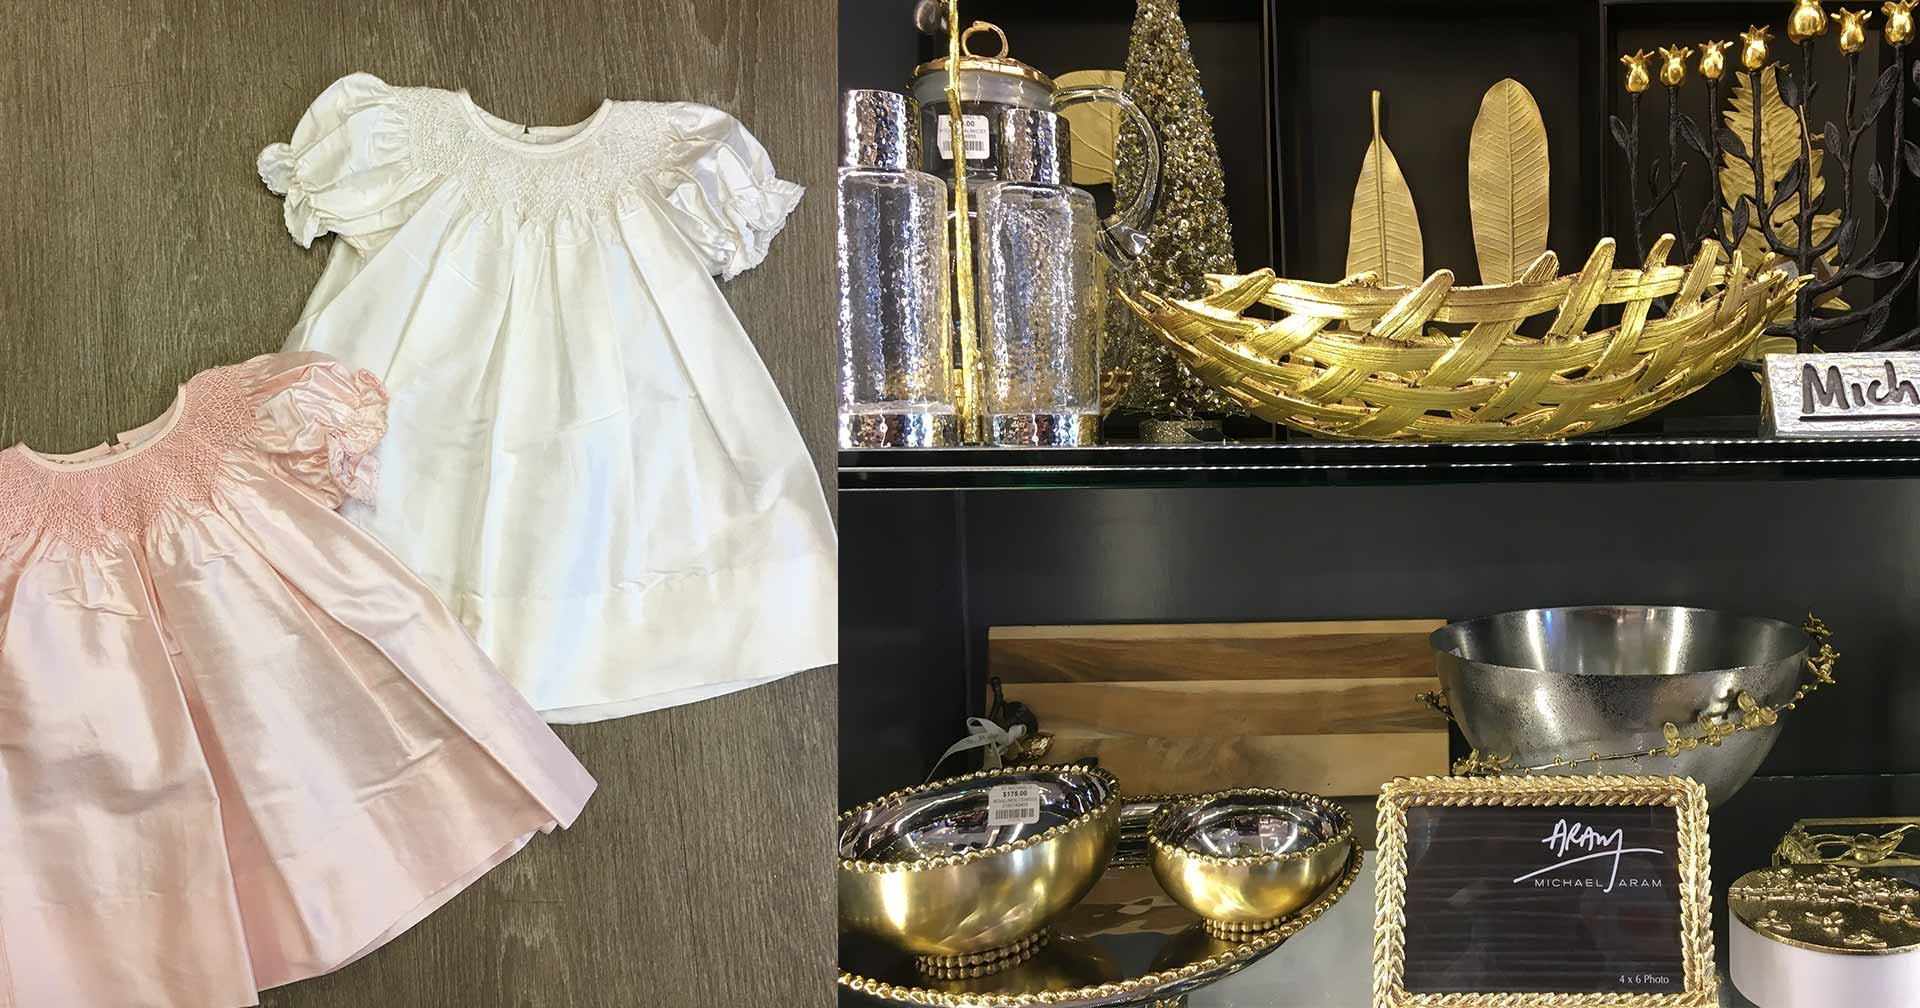 A product assortment of baby clothes, home decor and more can be found at St. Michael's.